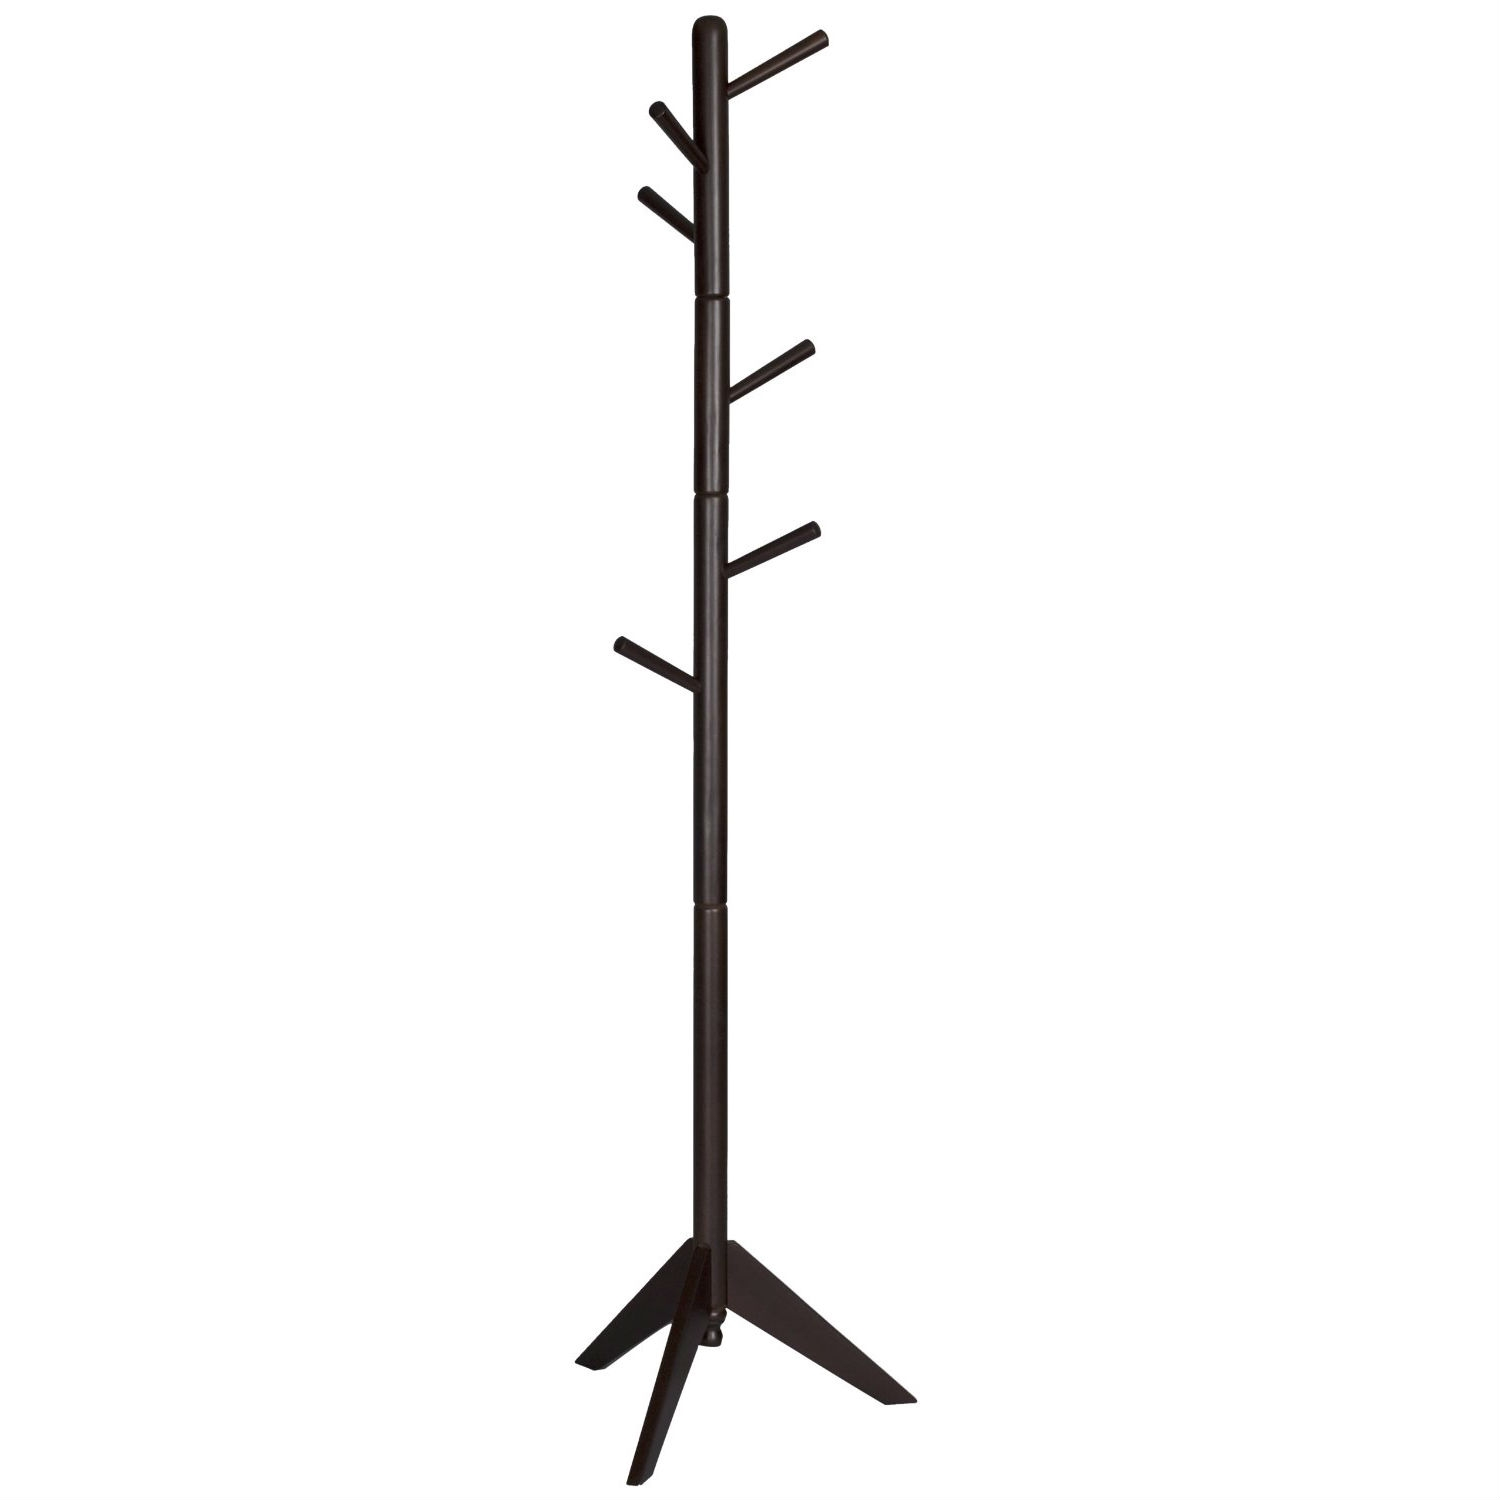 Espresso Wood Finish Coat Rack Entryway Hall Tree Hat Rack,  CMHTE35 :  This Espresso Wood Finish Coat Rack Entryway Hall Tree Hat Rack provides ample storage for coats and accessories. A 360 degree turning top provides easy access.